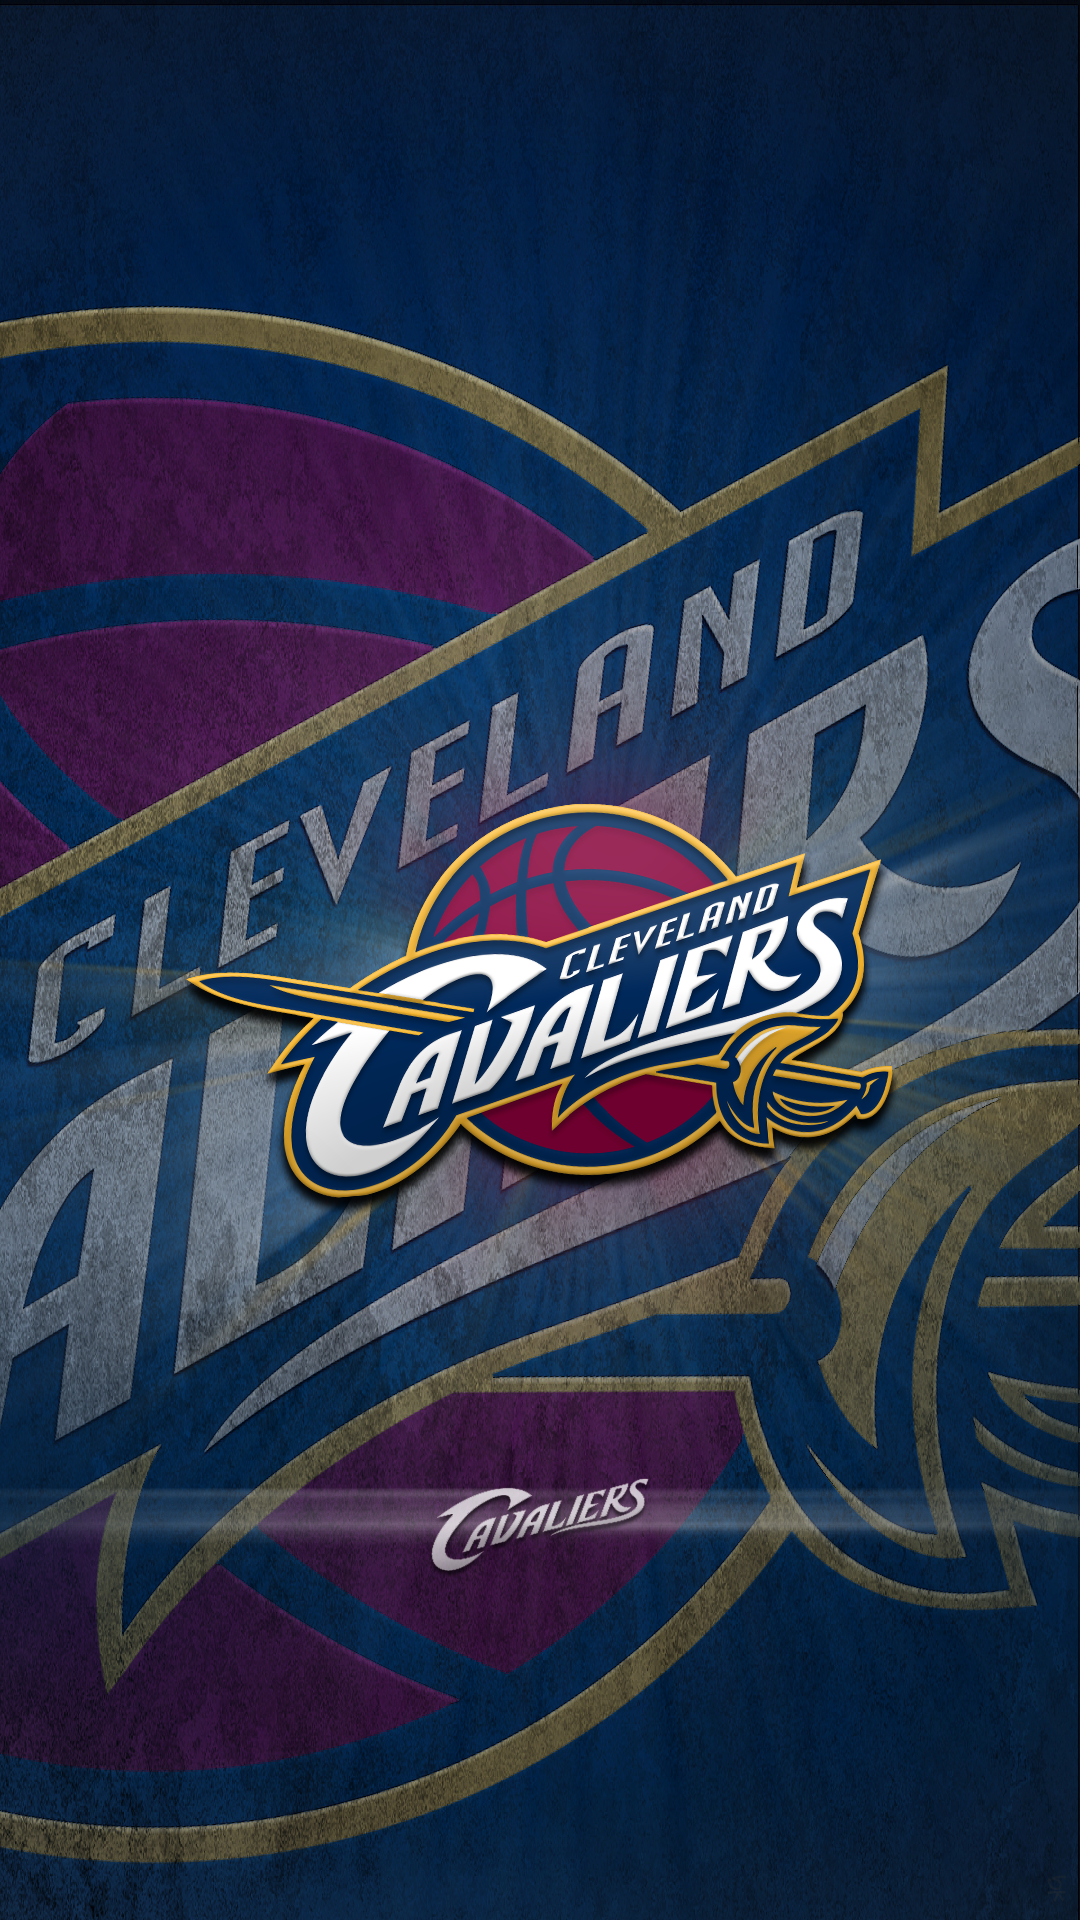 Wallpapers Cleveland Cavaliers Cavs Wallpaper Cavaliers Wallpaper Basketball Wallpaper